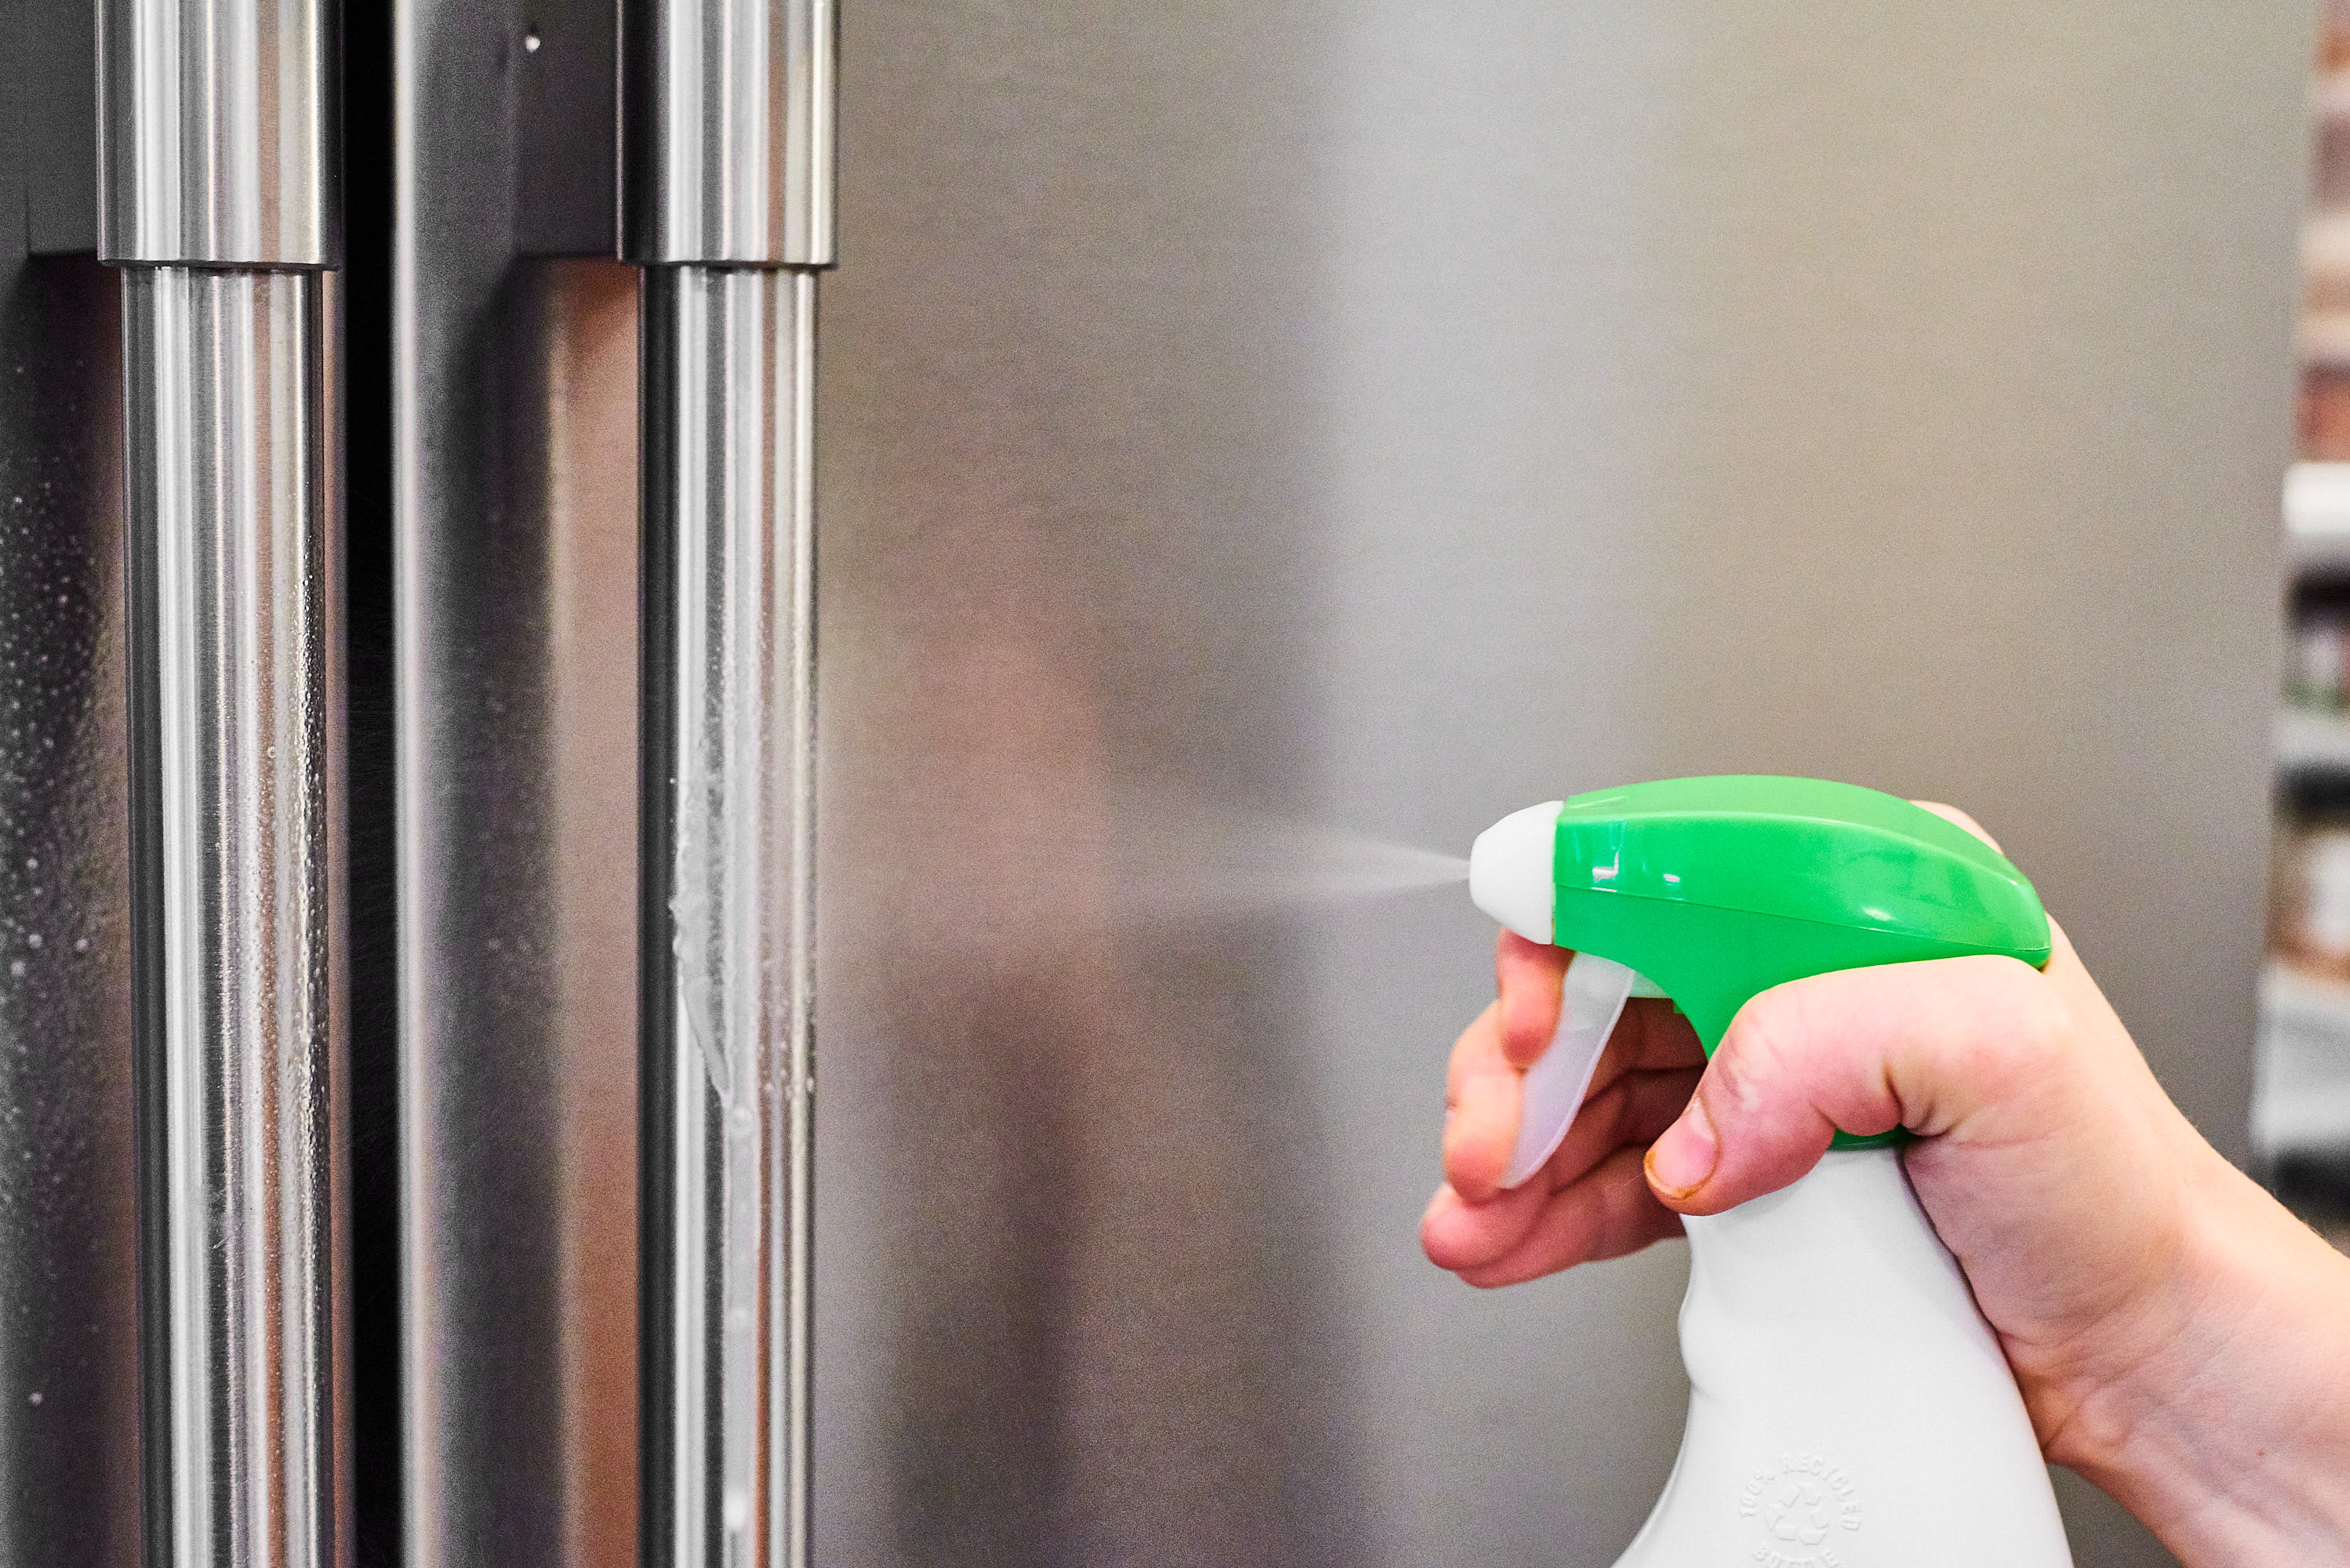 How To Properly Wipe Down Your Germy Appliance Handles: gallery image 1